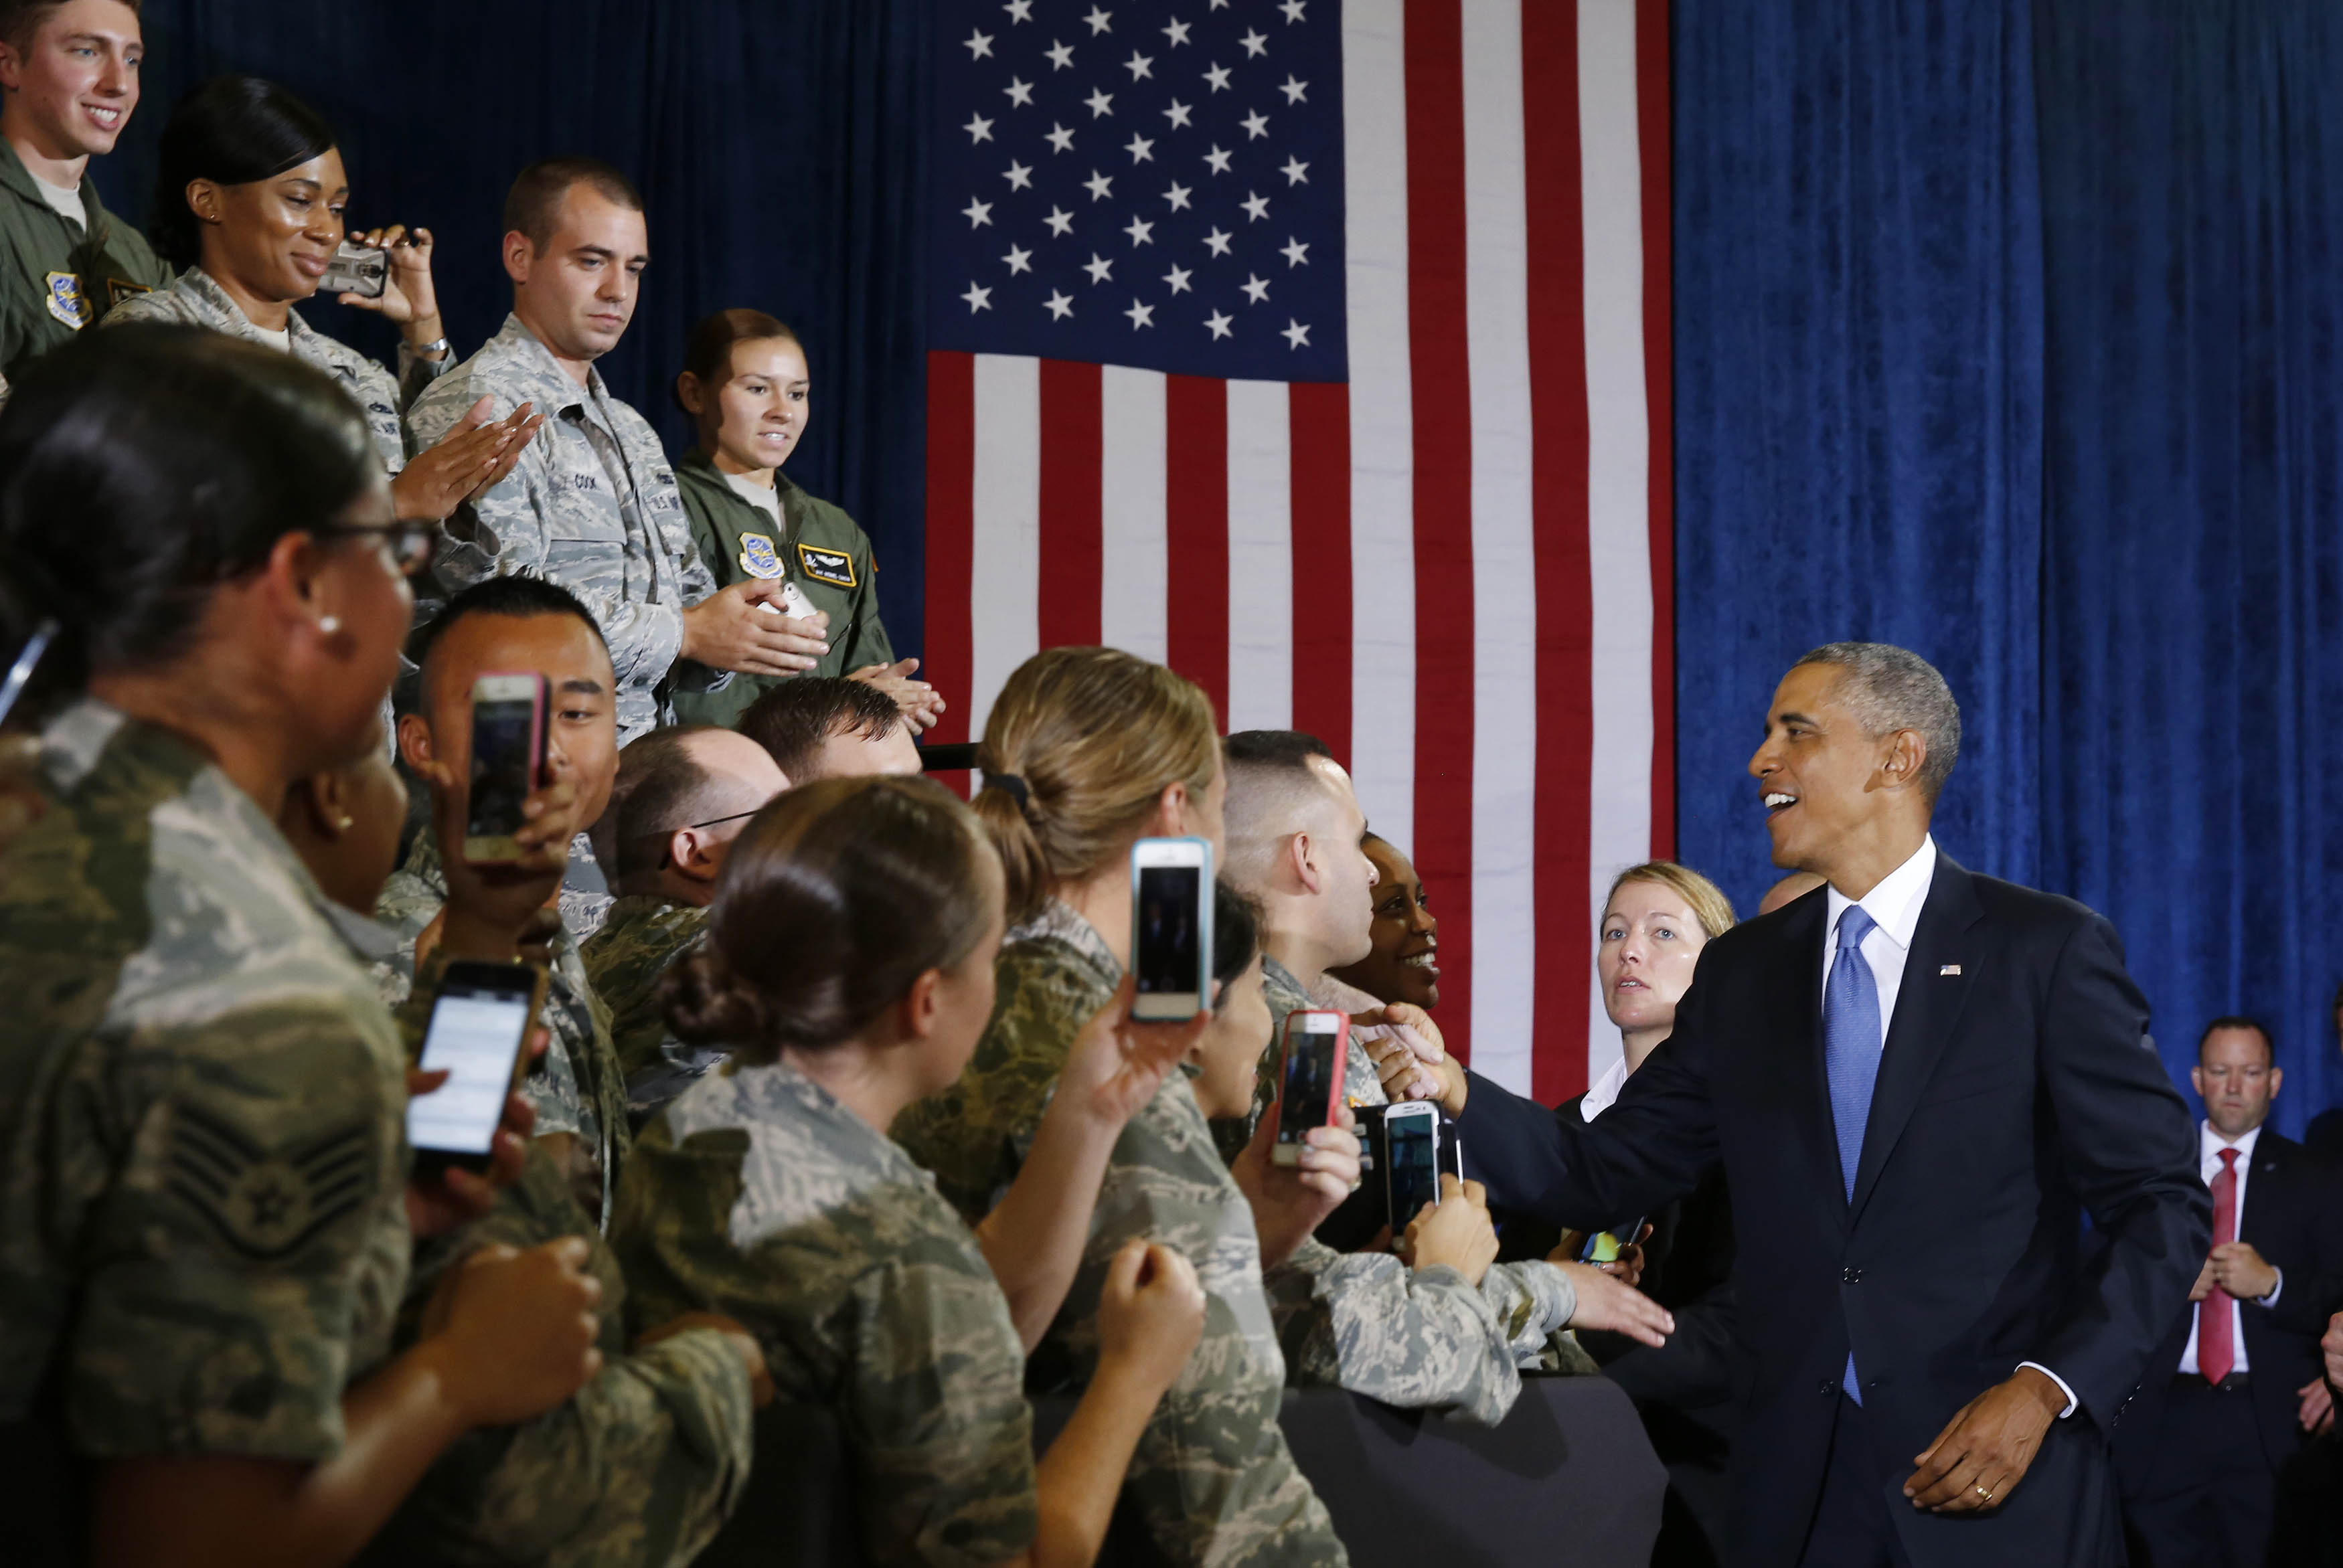 President Barack Obama shakes hands before speaking at MacDill Air Force Base in Tampa, Florida.